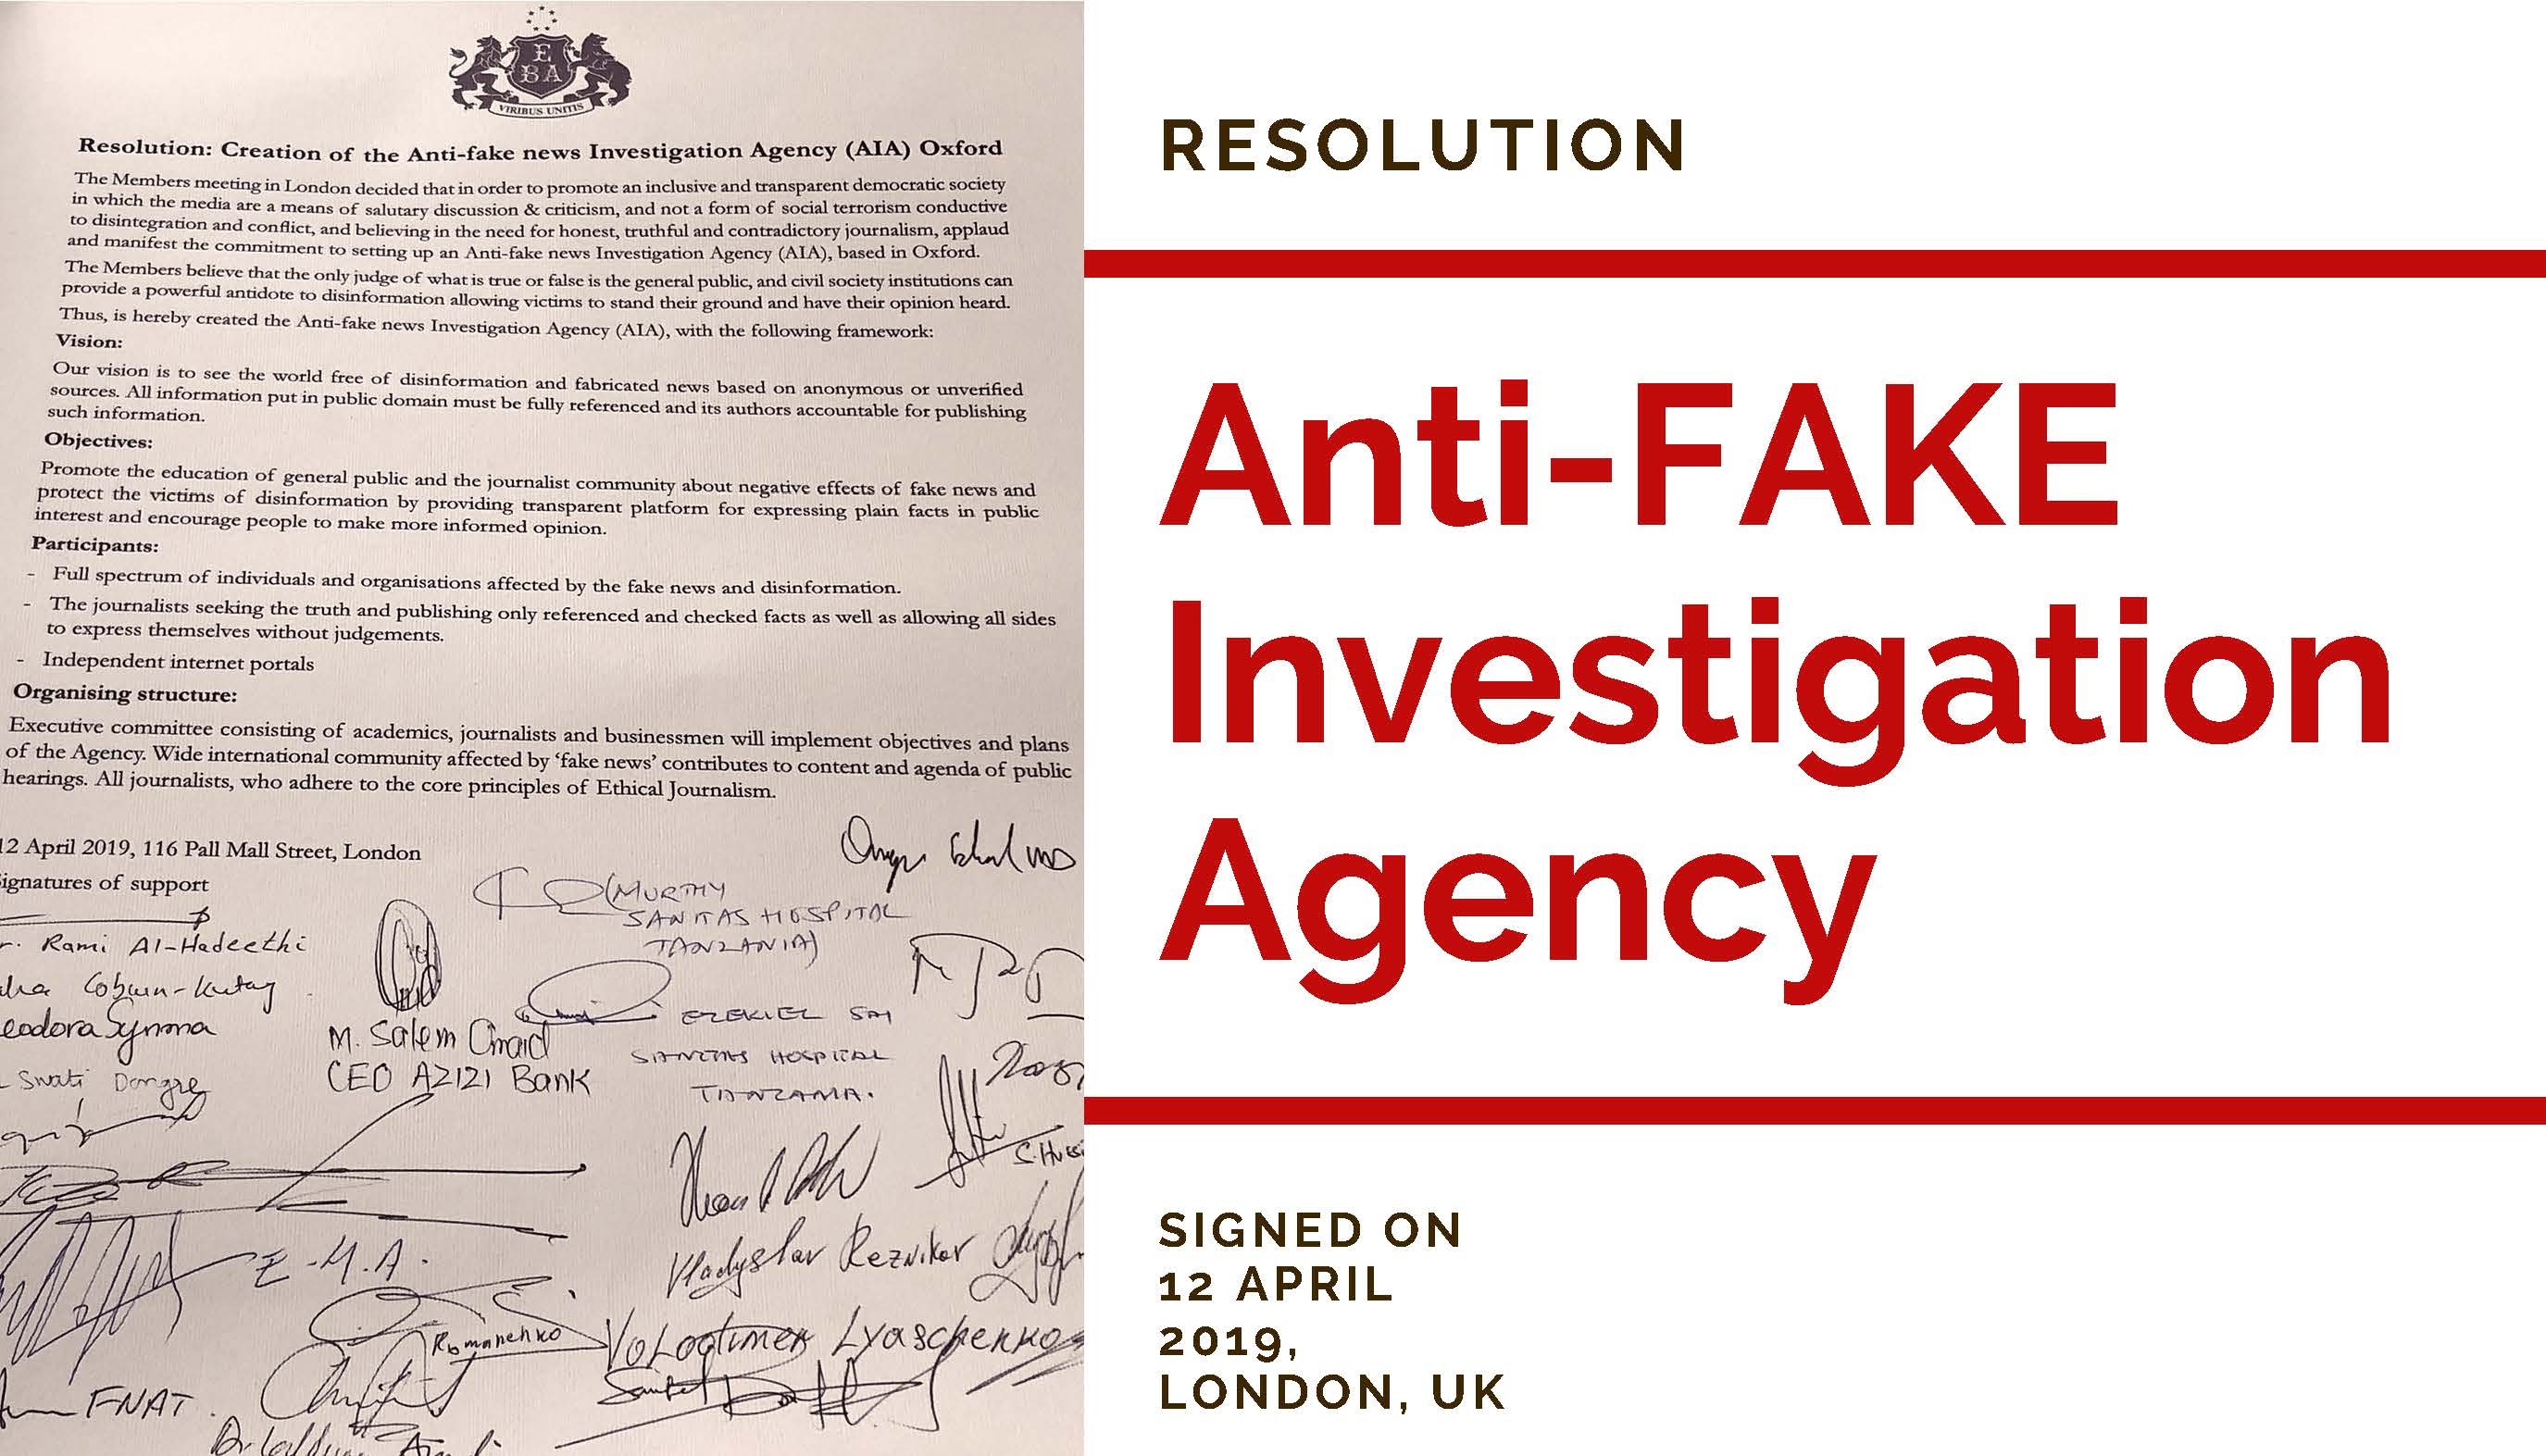 ANTI-FAKE INVESTIGATION AGENCY, a powerful ANTIDOTE to DISINFORMATION and FAKE NEWS